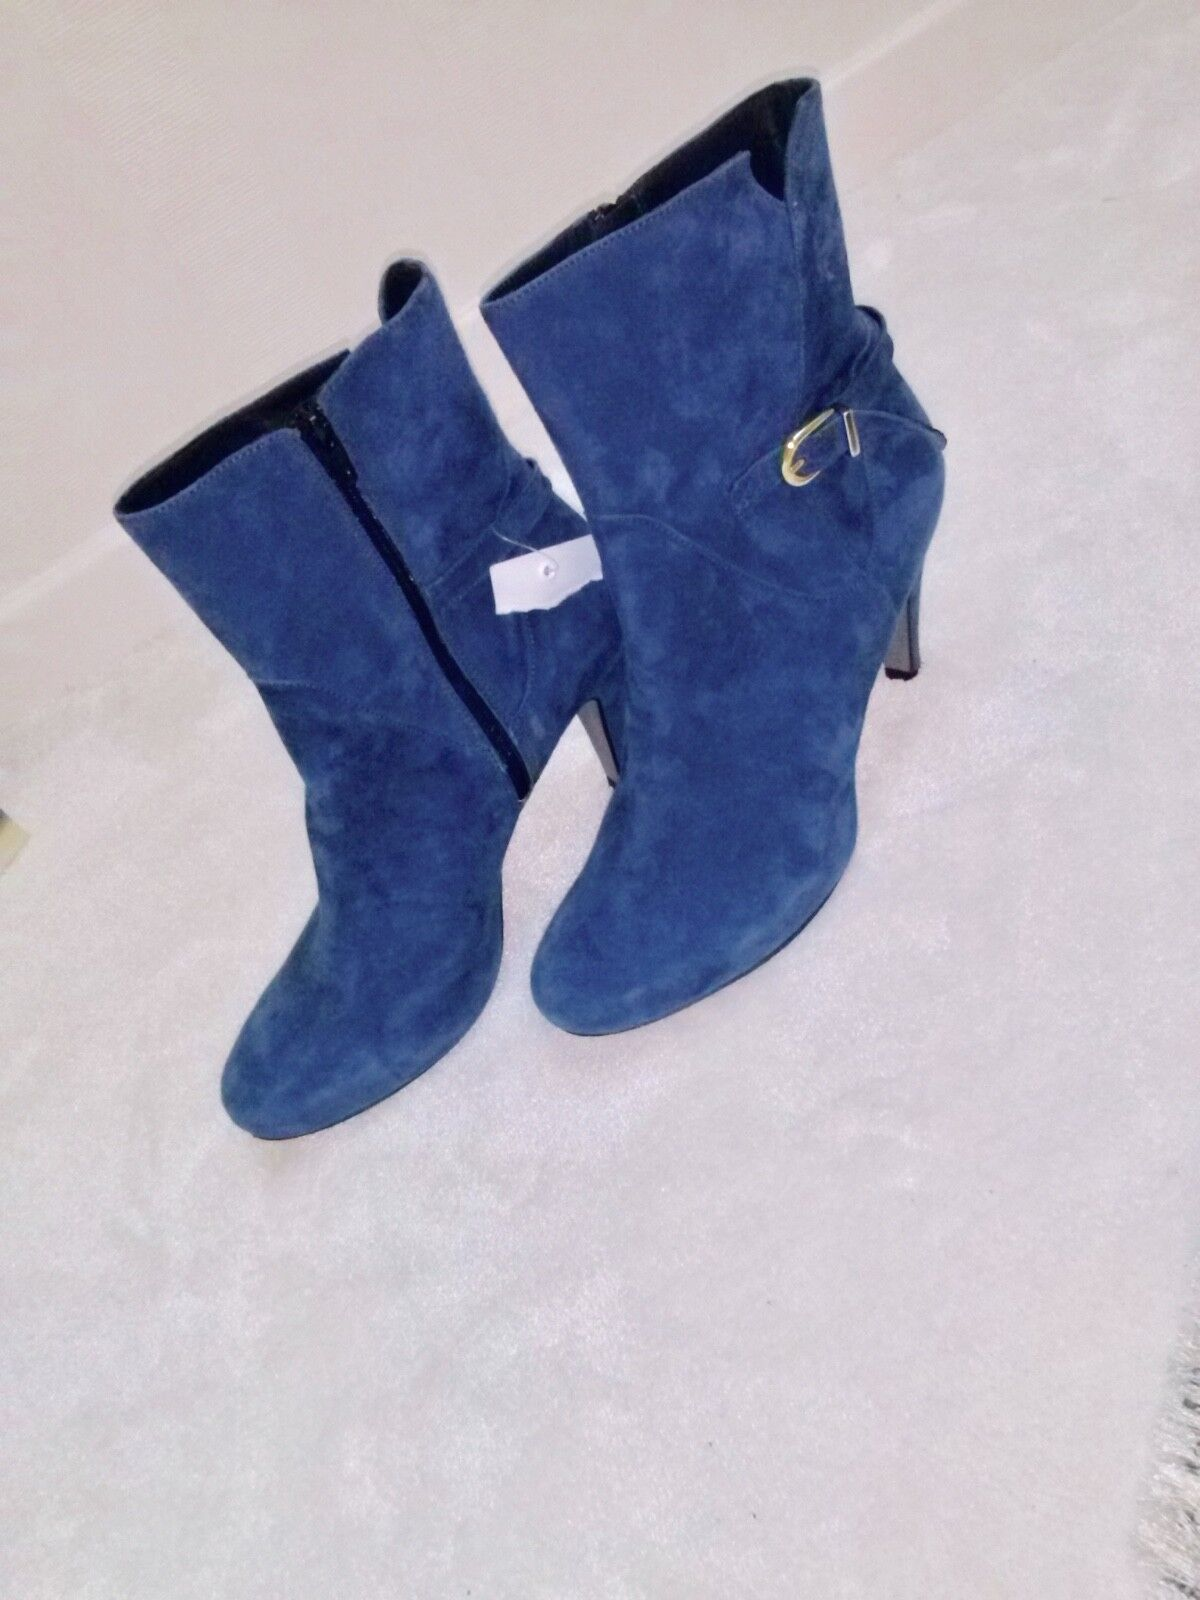 DAMEN MADE STIEFELETTEN -NUBUK RAUH LEDER - GR. 41 MADE DAMEN IN PORTUGAL by BUFFALO LONDON 35b813